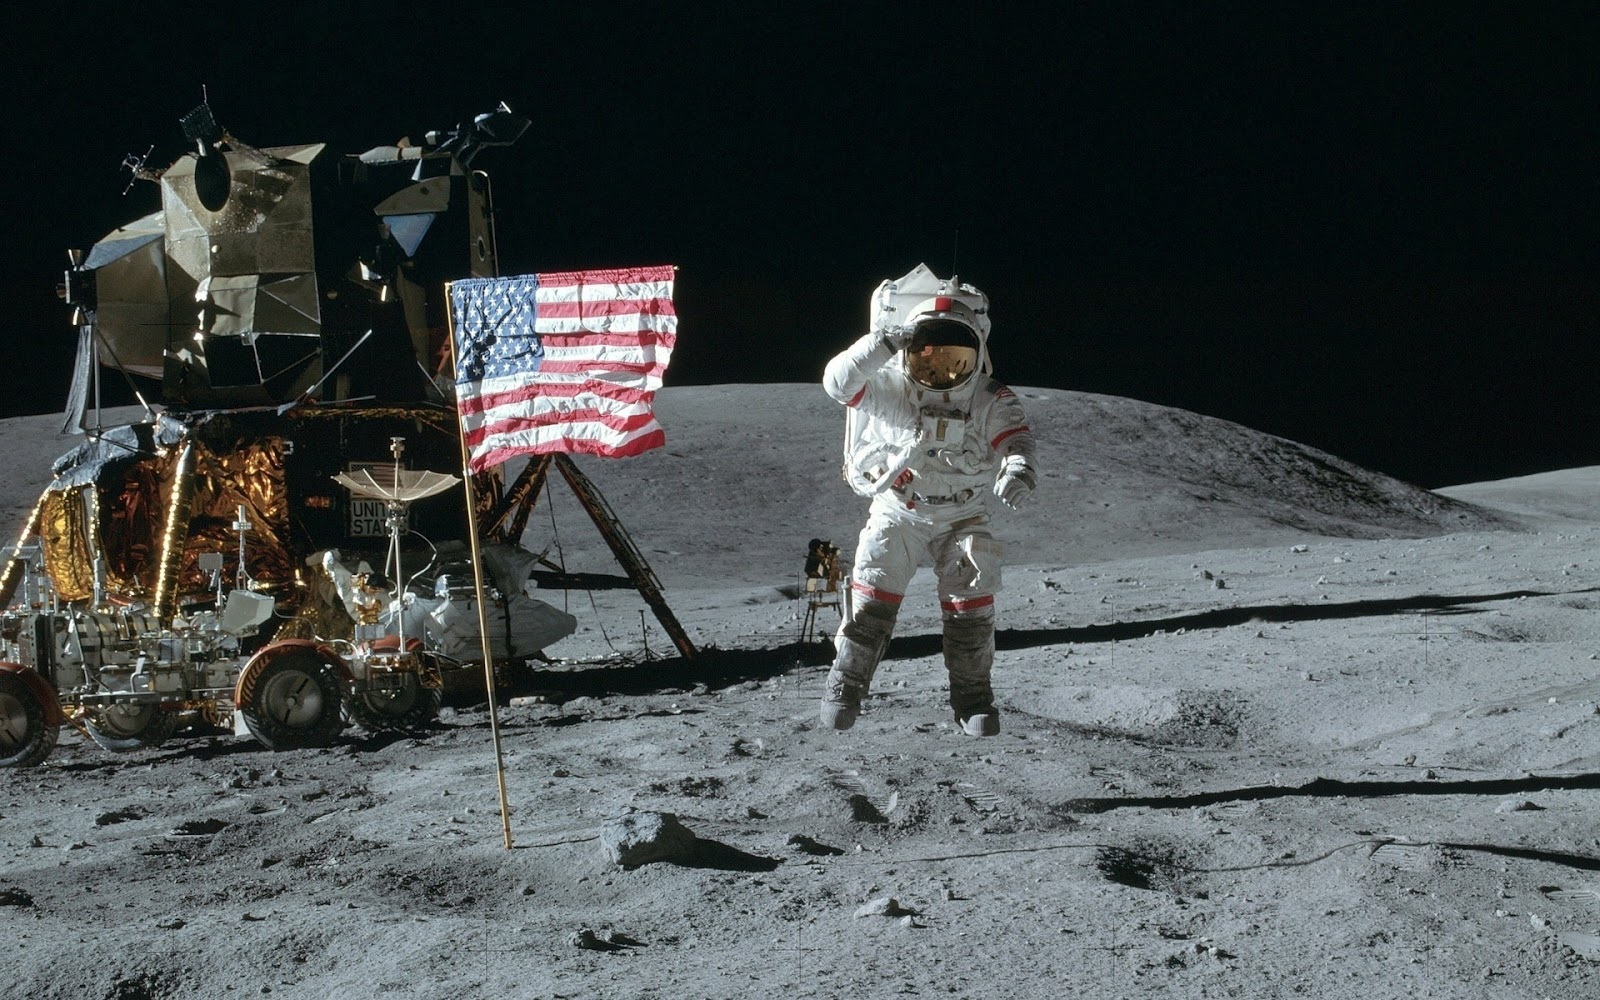 apollo 11 moon landing hoax - photo #18